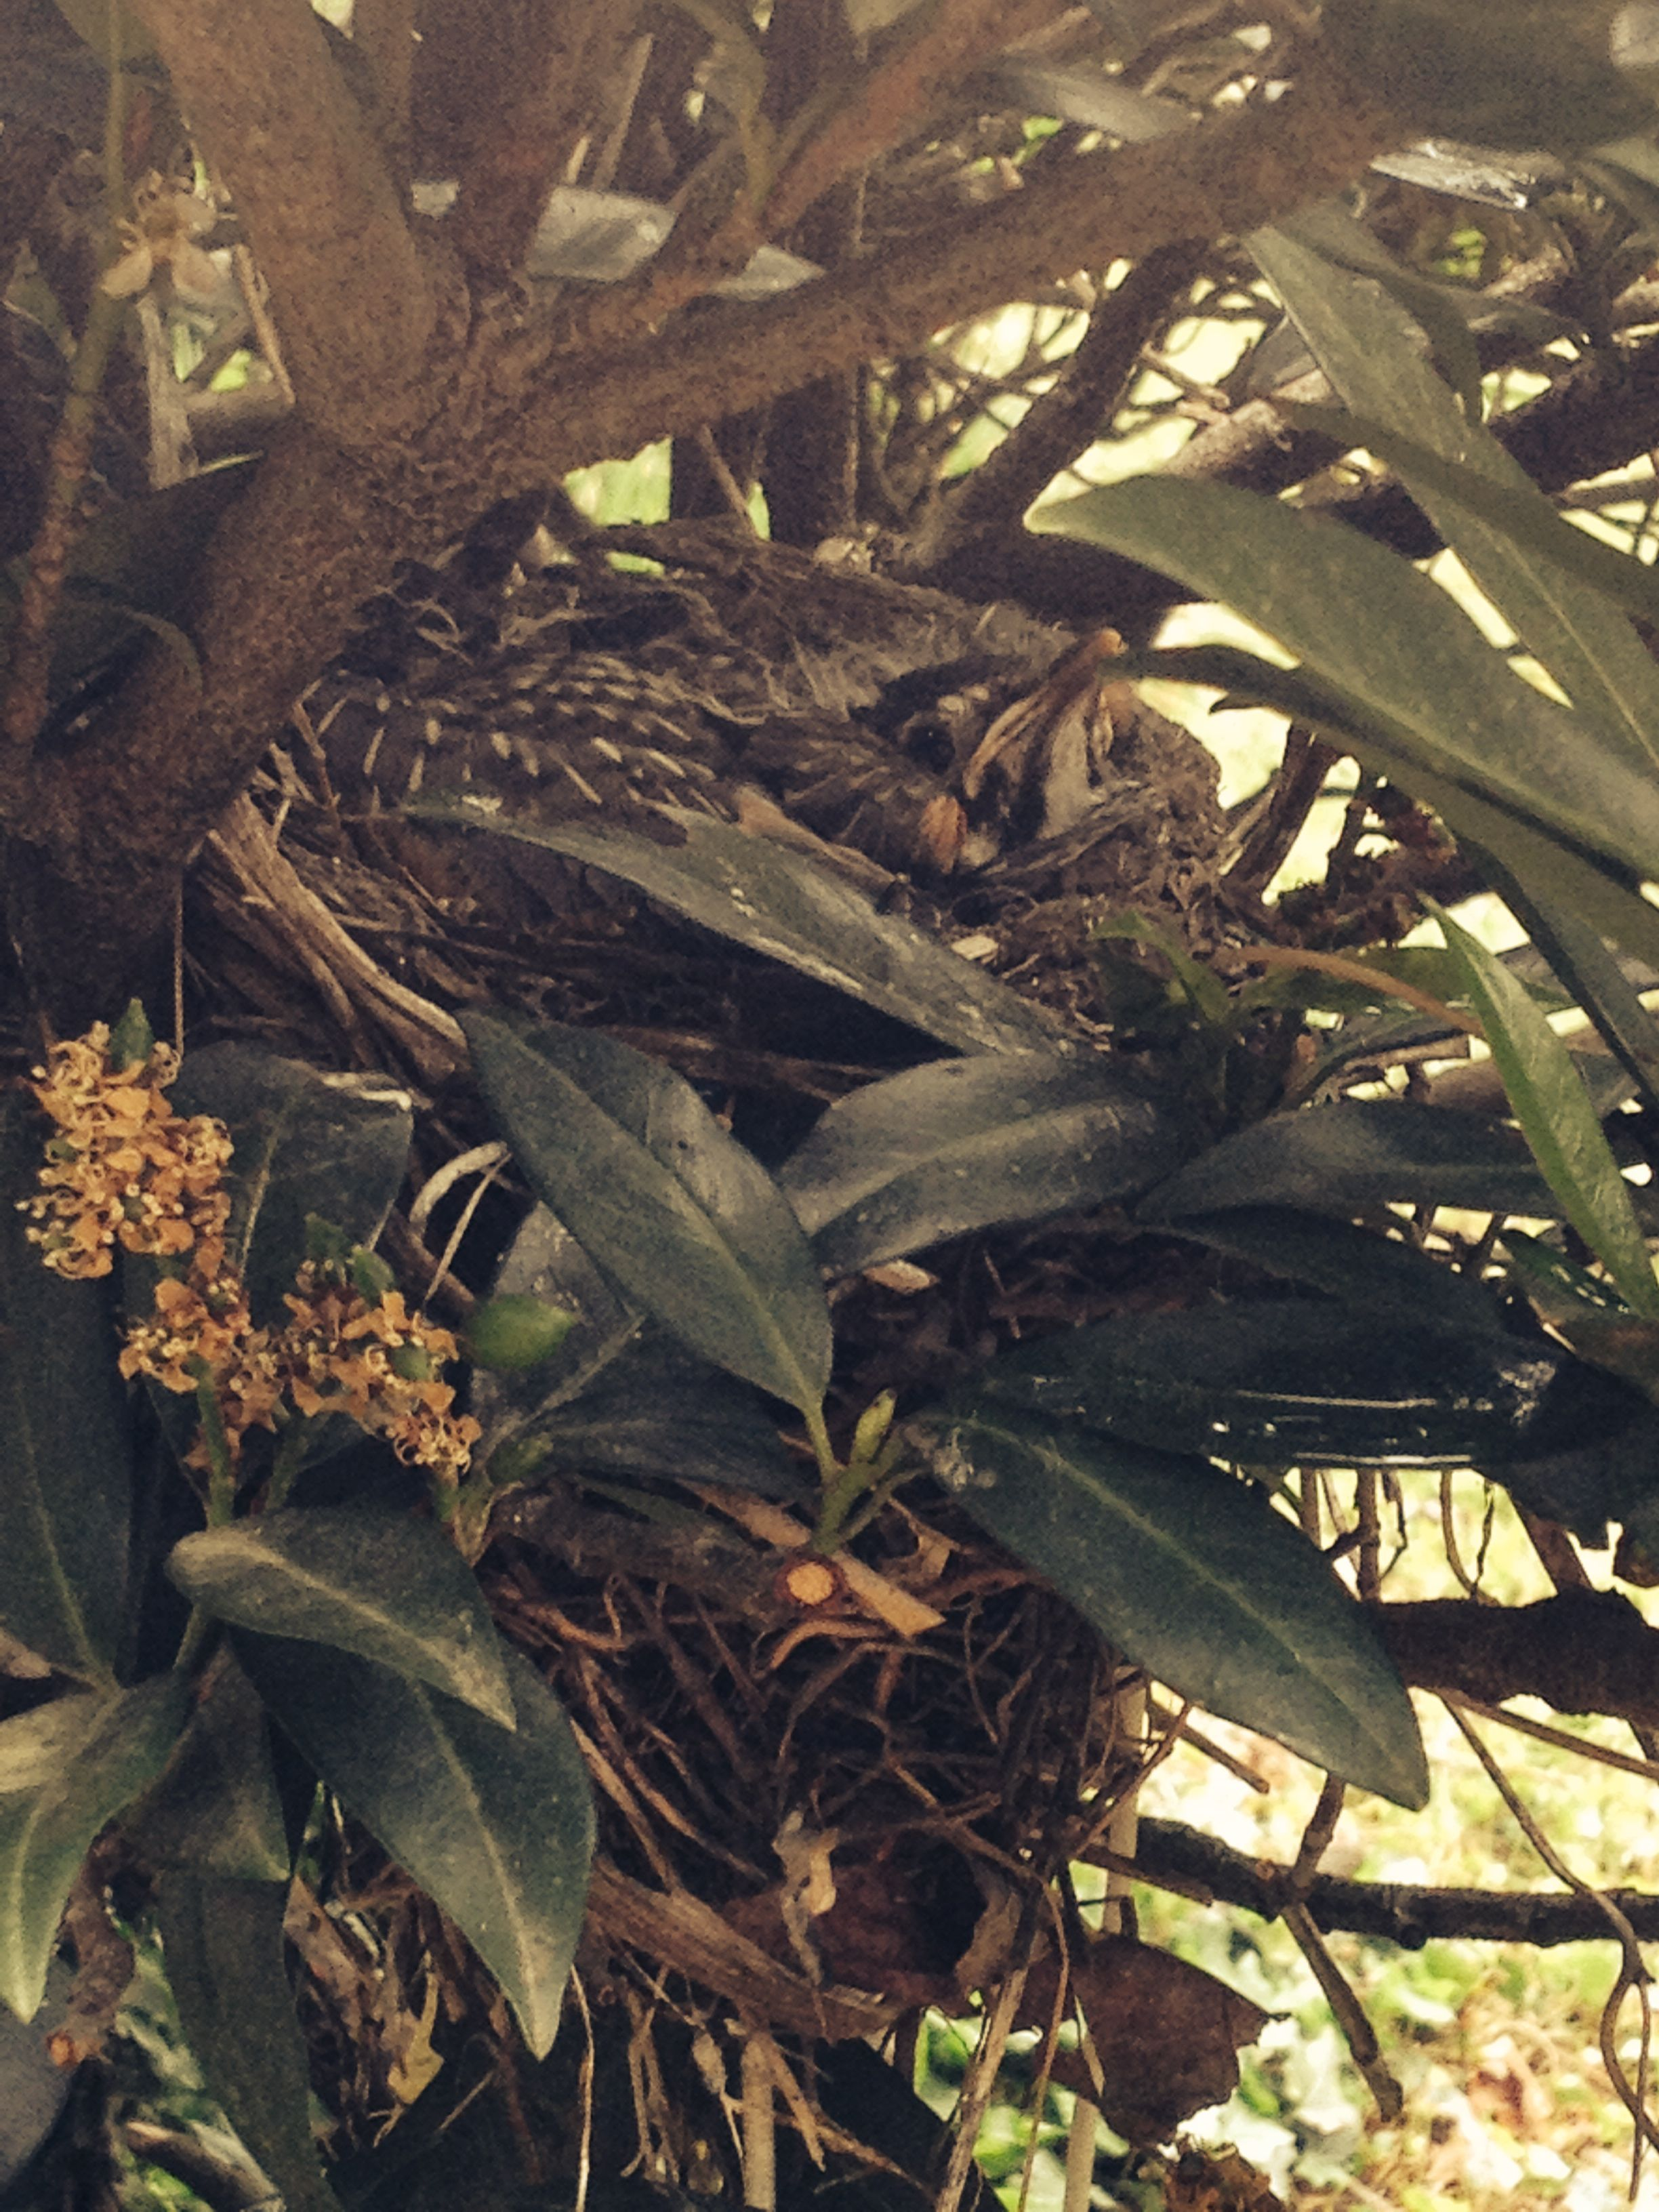 Two Rounds Of Birds With Babies In The Same Shrub